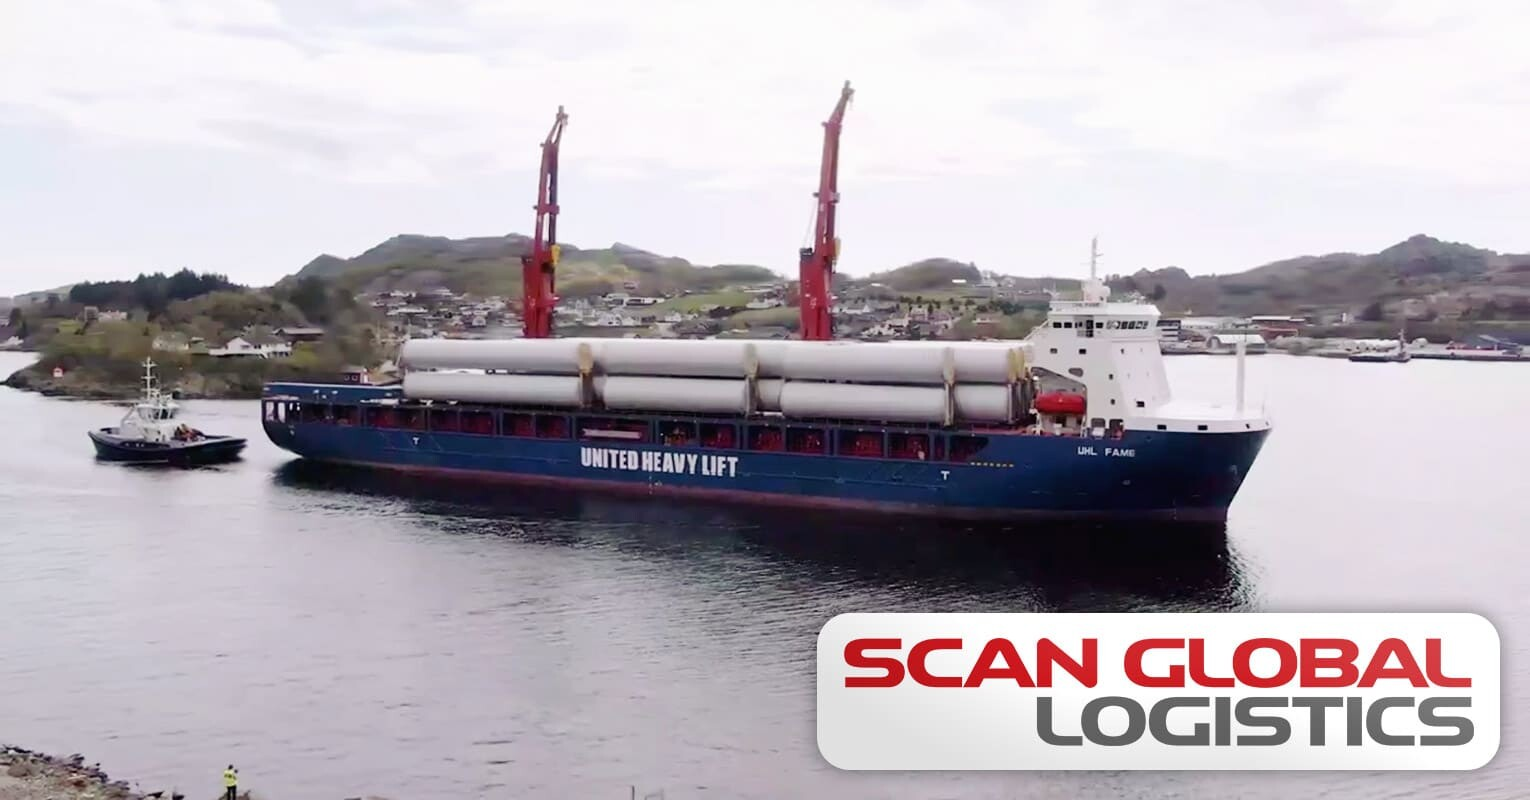 Scan Global Logistics Transported Renewable Energy Project Cargo by Heavylift Vessel and Barge